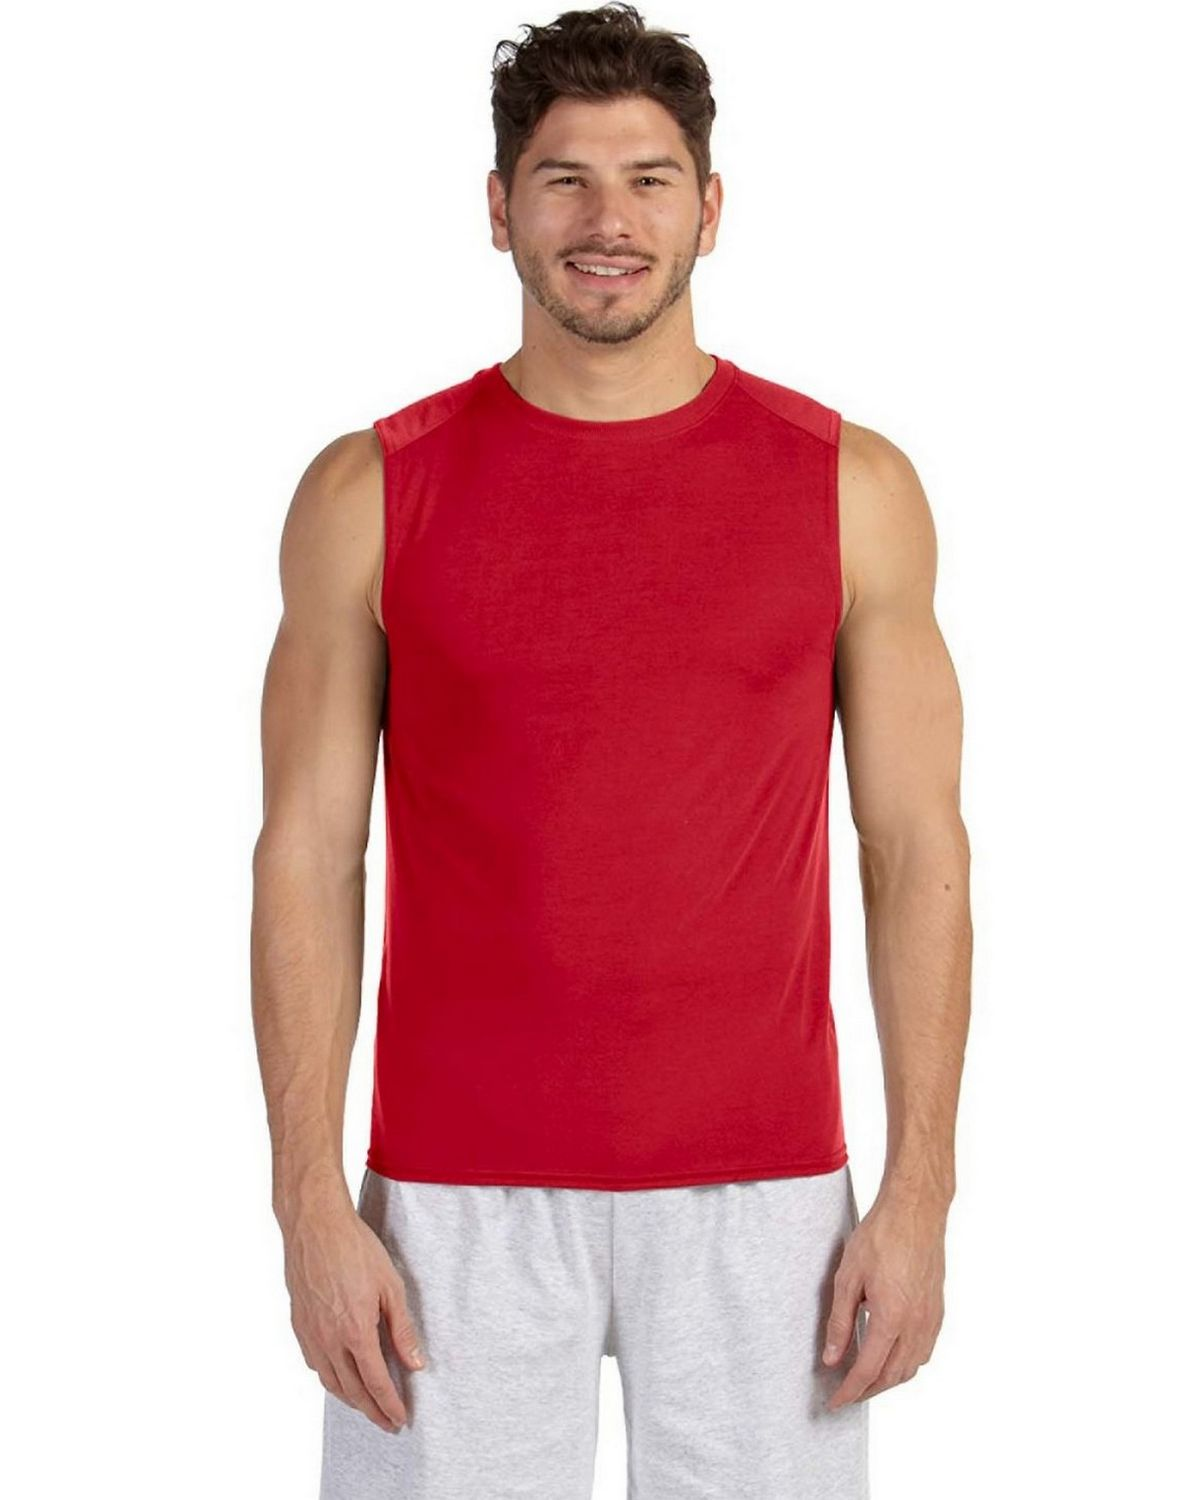 Gildan g427 performance sleeveless t shirt size chart for Gildan brand t shirt size chart